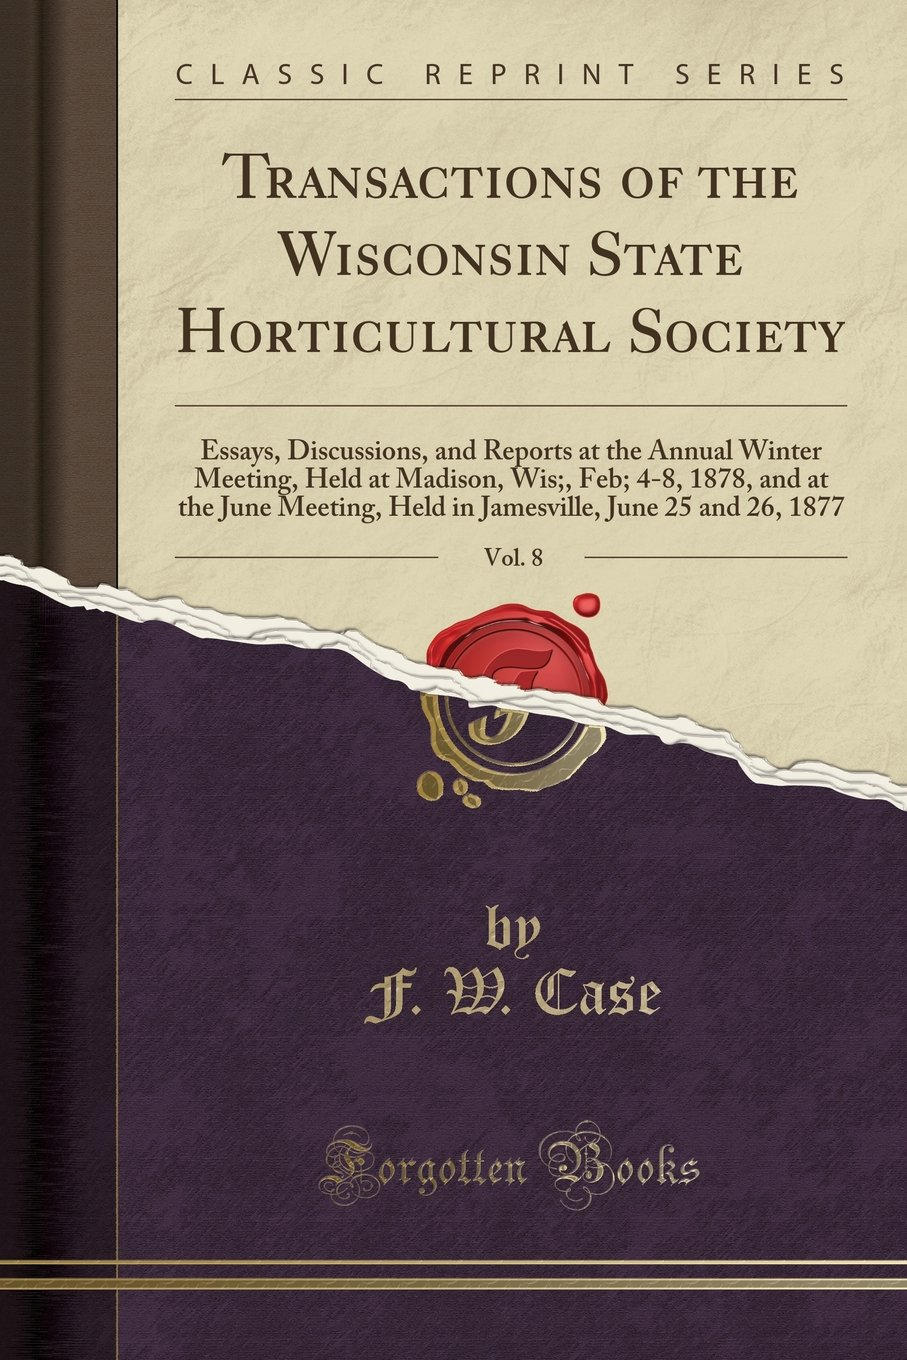 Read Online Transactions of the Wisconsin State Horticultural Society, Vol. 8: Essays, Discussions, and Reports at the Annual Winter Meeting, Held at Madison, ... June 25 and 26, 1877 (Classic Reprint) pdf epub